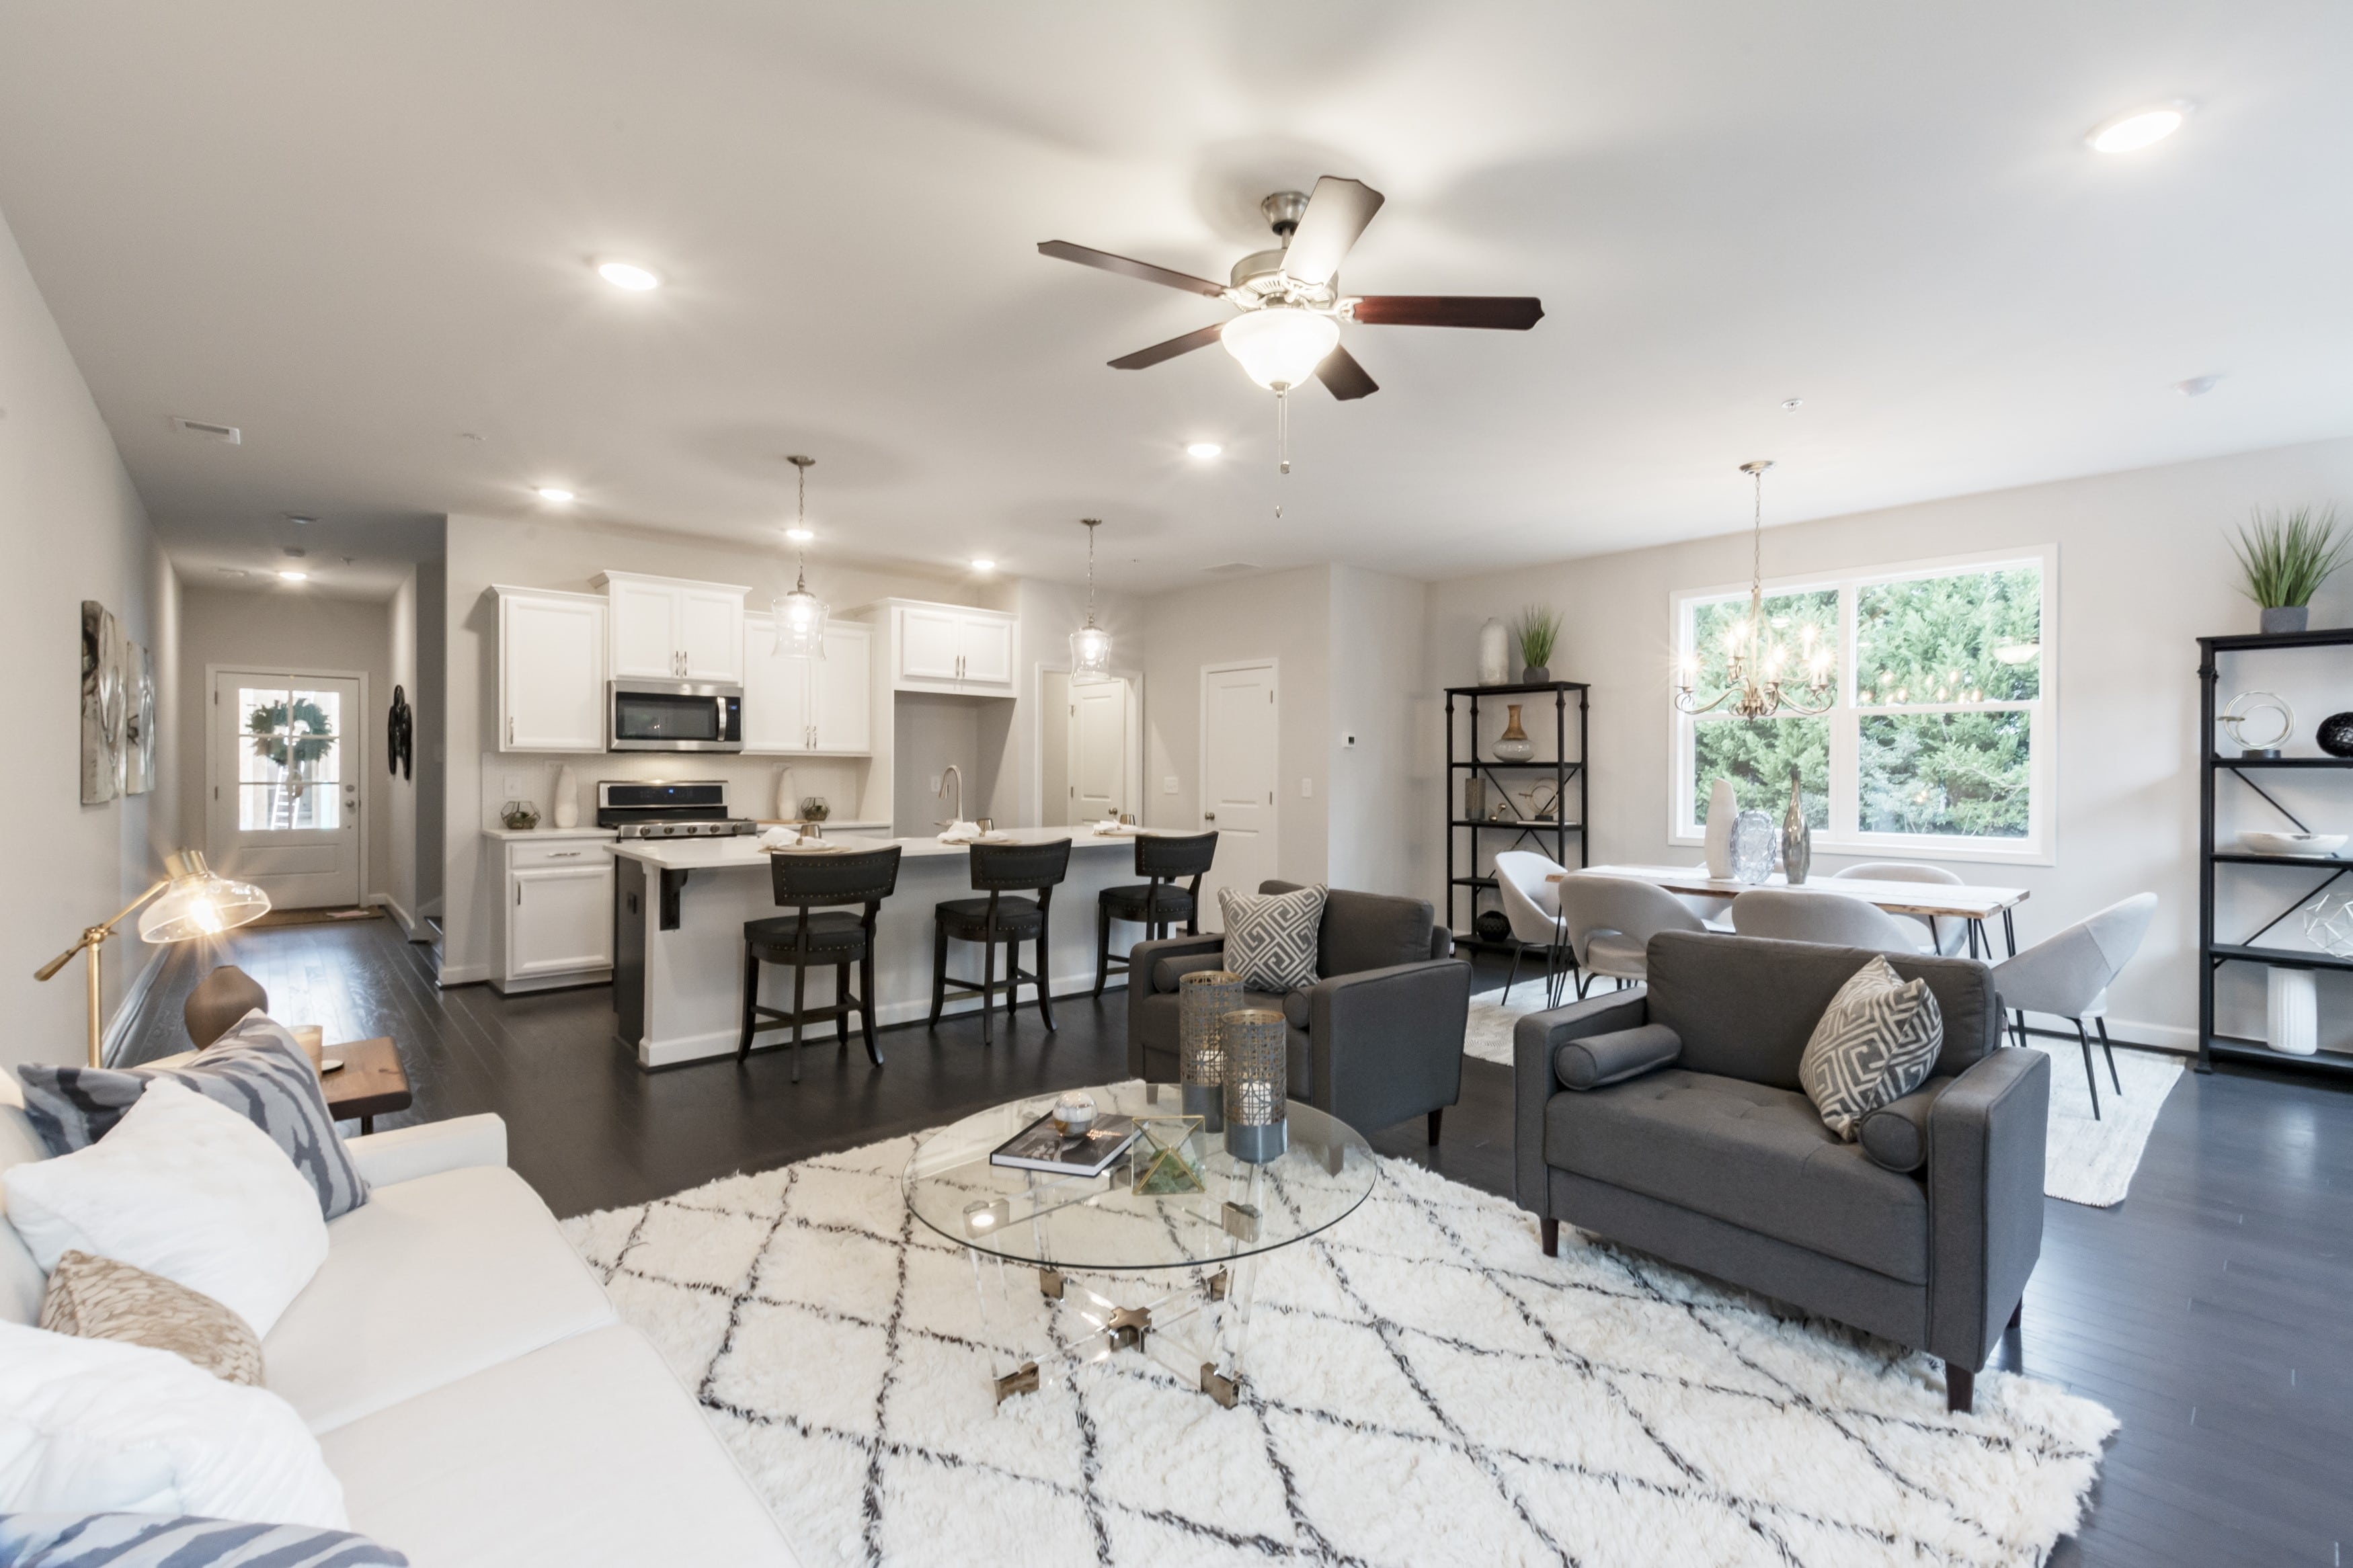 new staged model home at Cobb County community